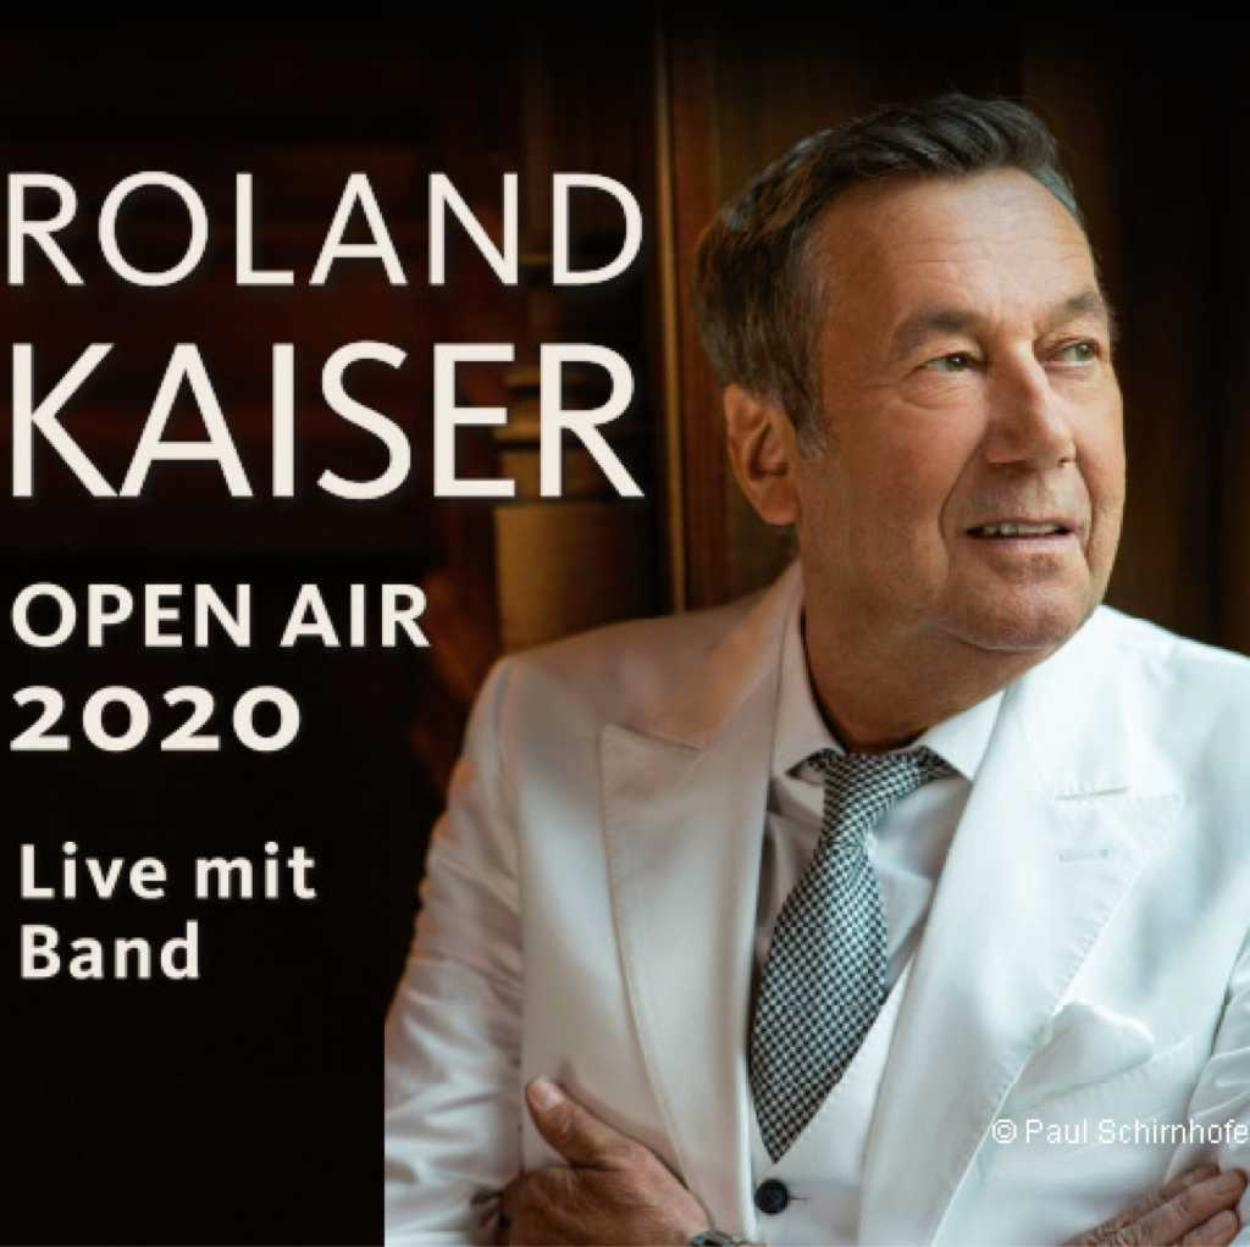 Roland Kaiser - Open Air 2020 Live mit Band | Berlin